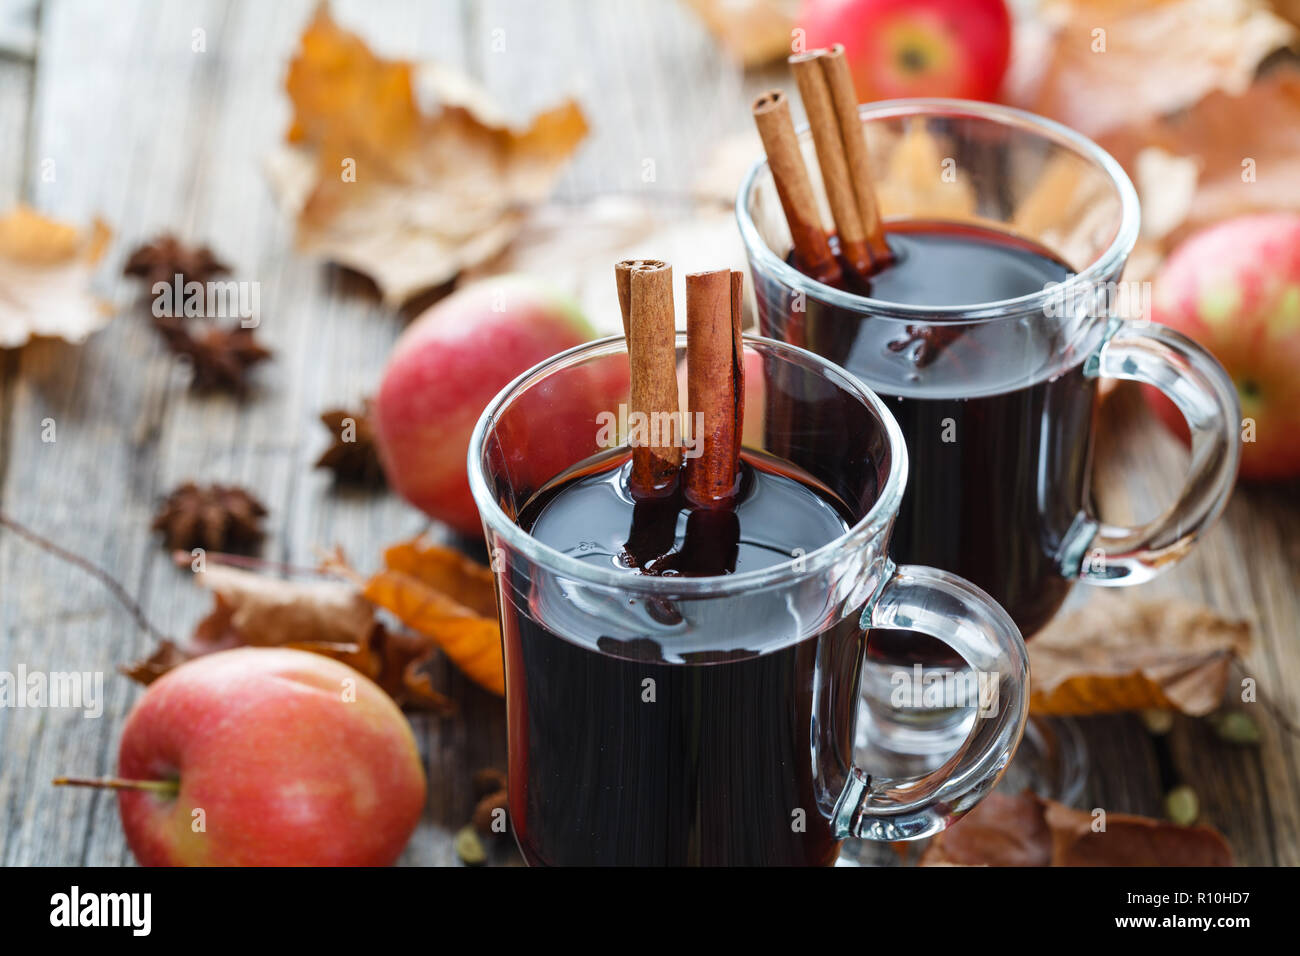 Hot mulled wine in glass on wooden table Stock Photo